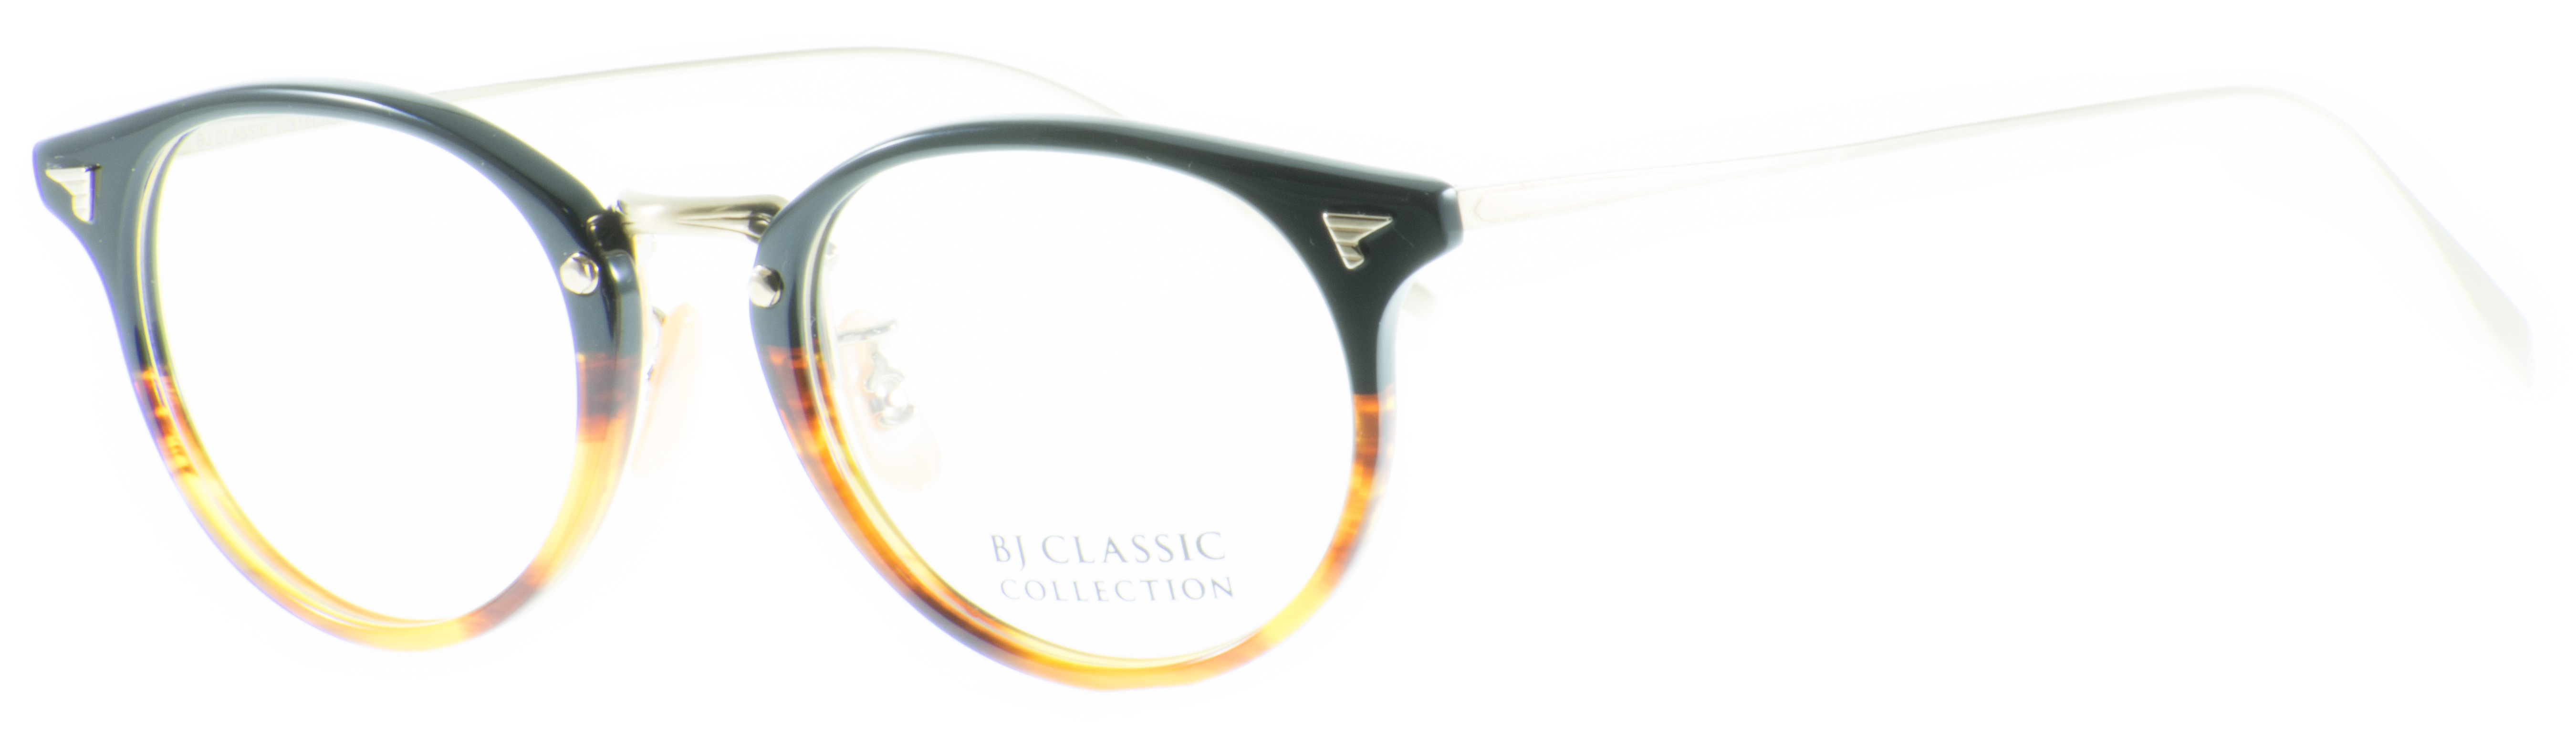 BJ CLASSIC COLLECTION COM-510NT 57-6 1070303402